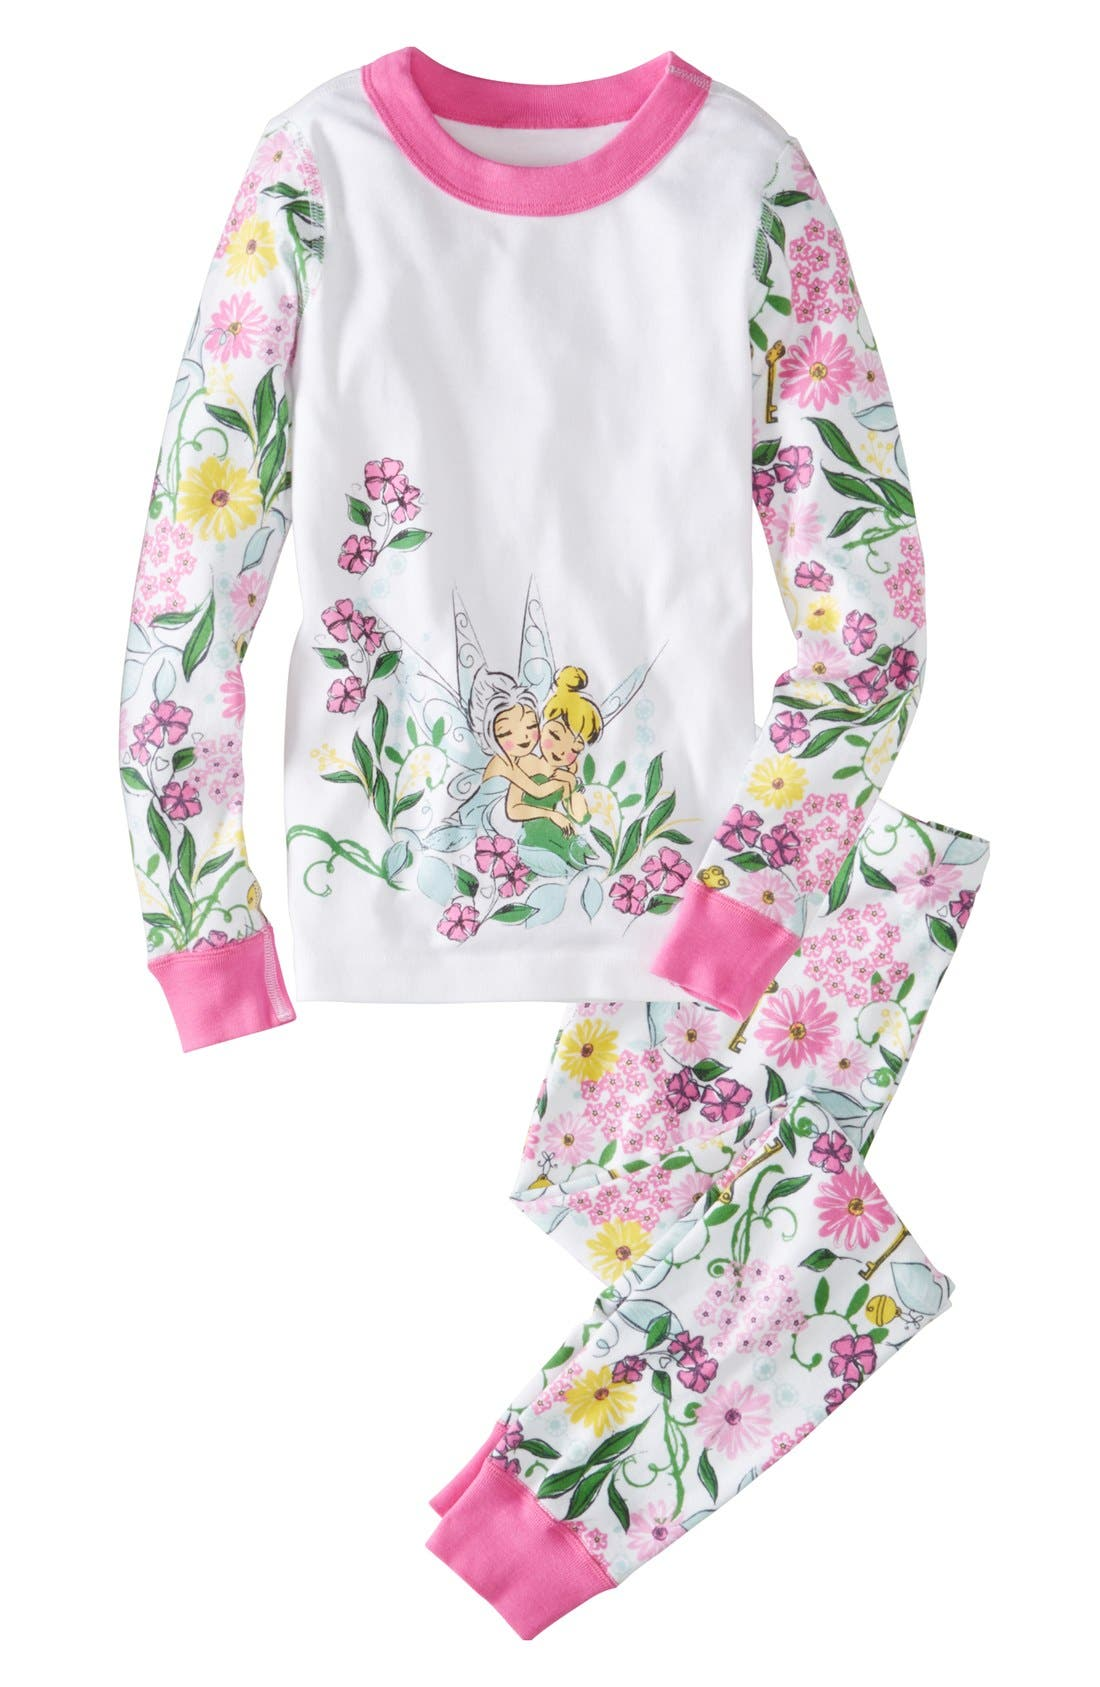 Main Image - Hanna Andersson 'Tink and Peri' Two-Piece Organic Cotton Fitted Pajamas (Little Girls & Big Girls)